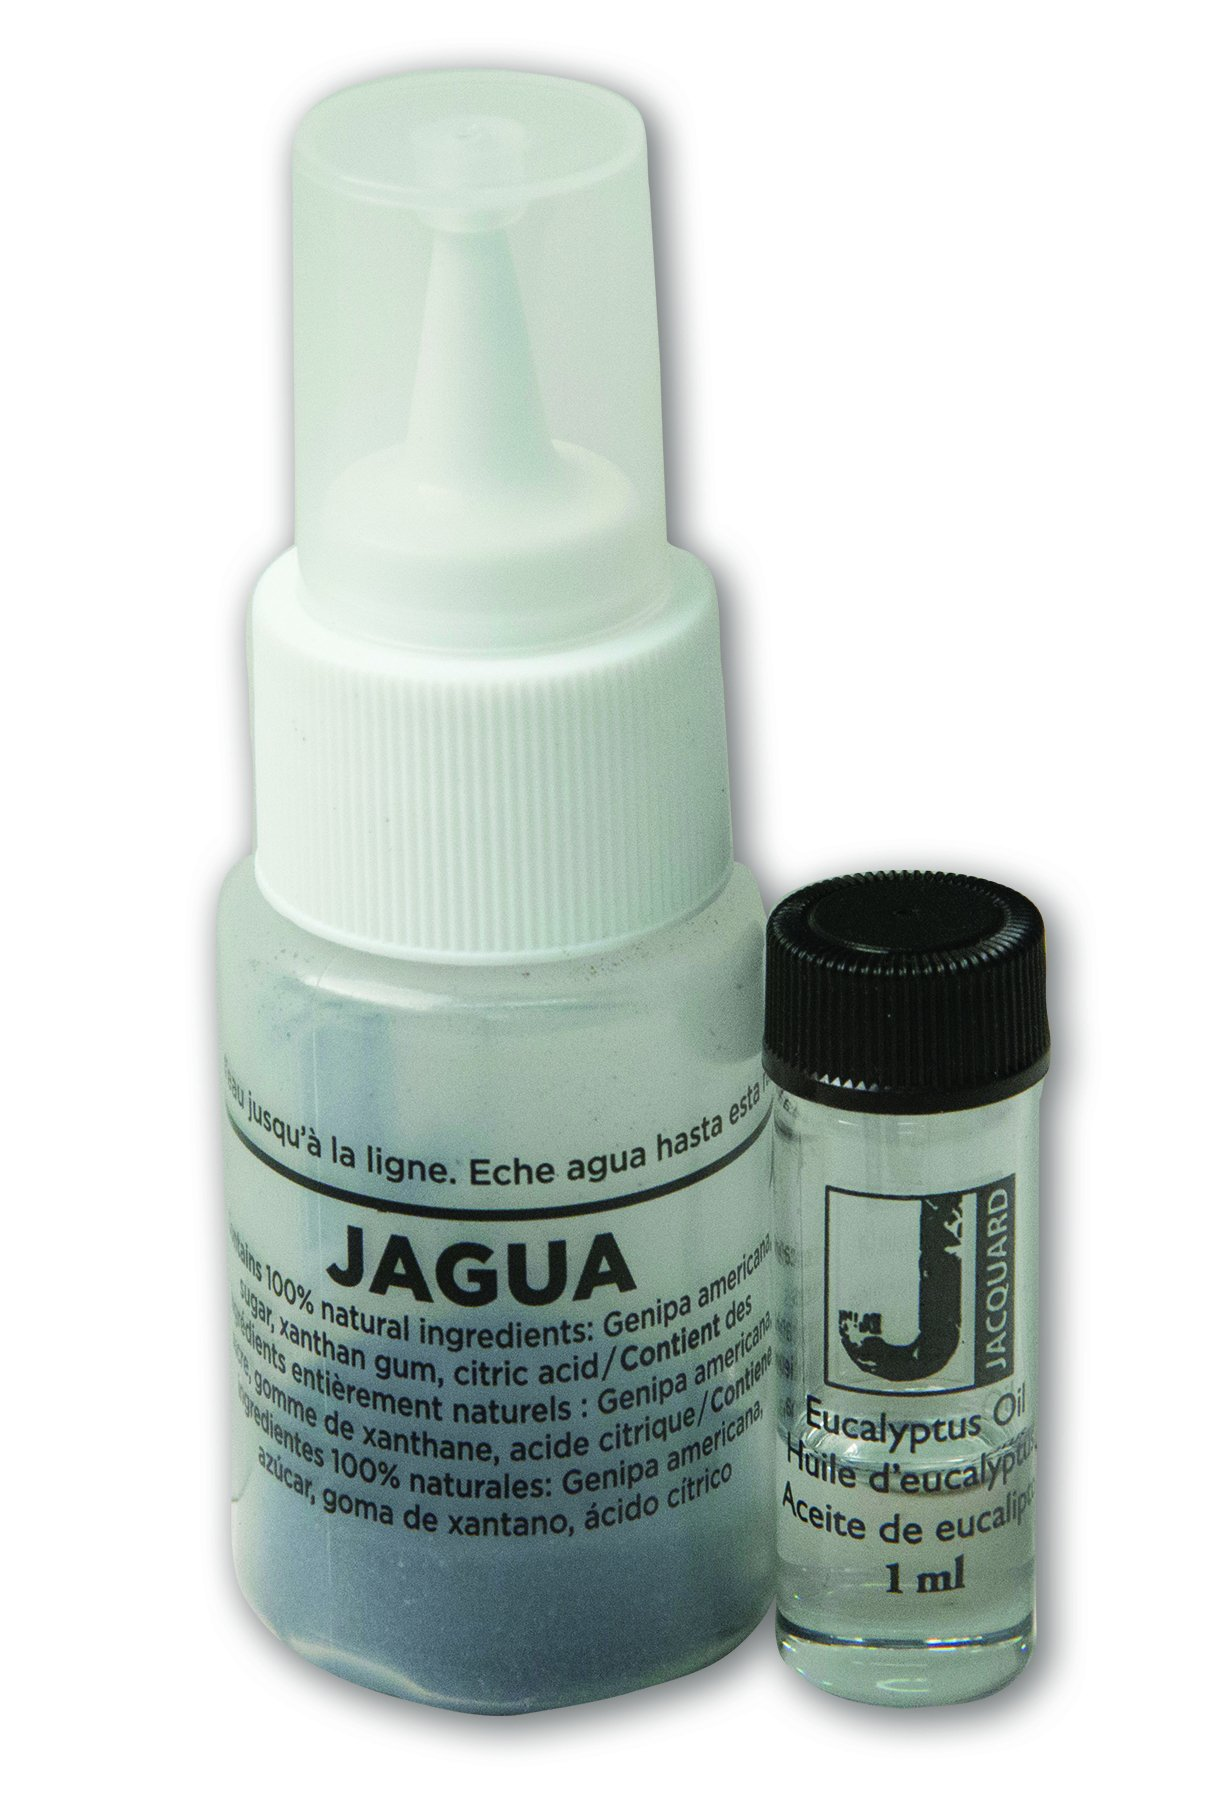 Jacquard Jagua Temporary with Transfer Paper Tattoo Kit (8 Piece) by Jacquard (Image #5)